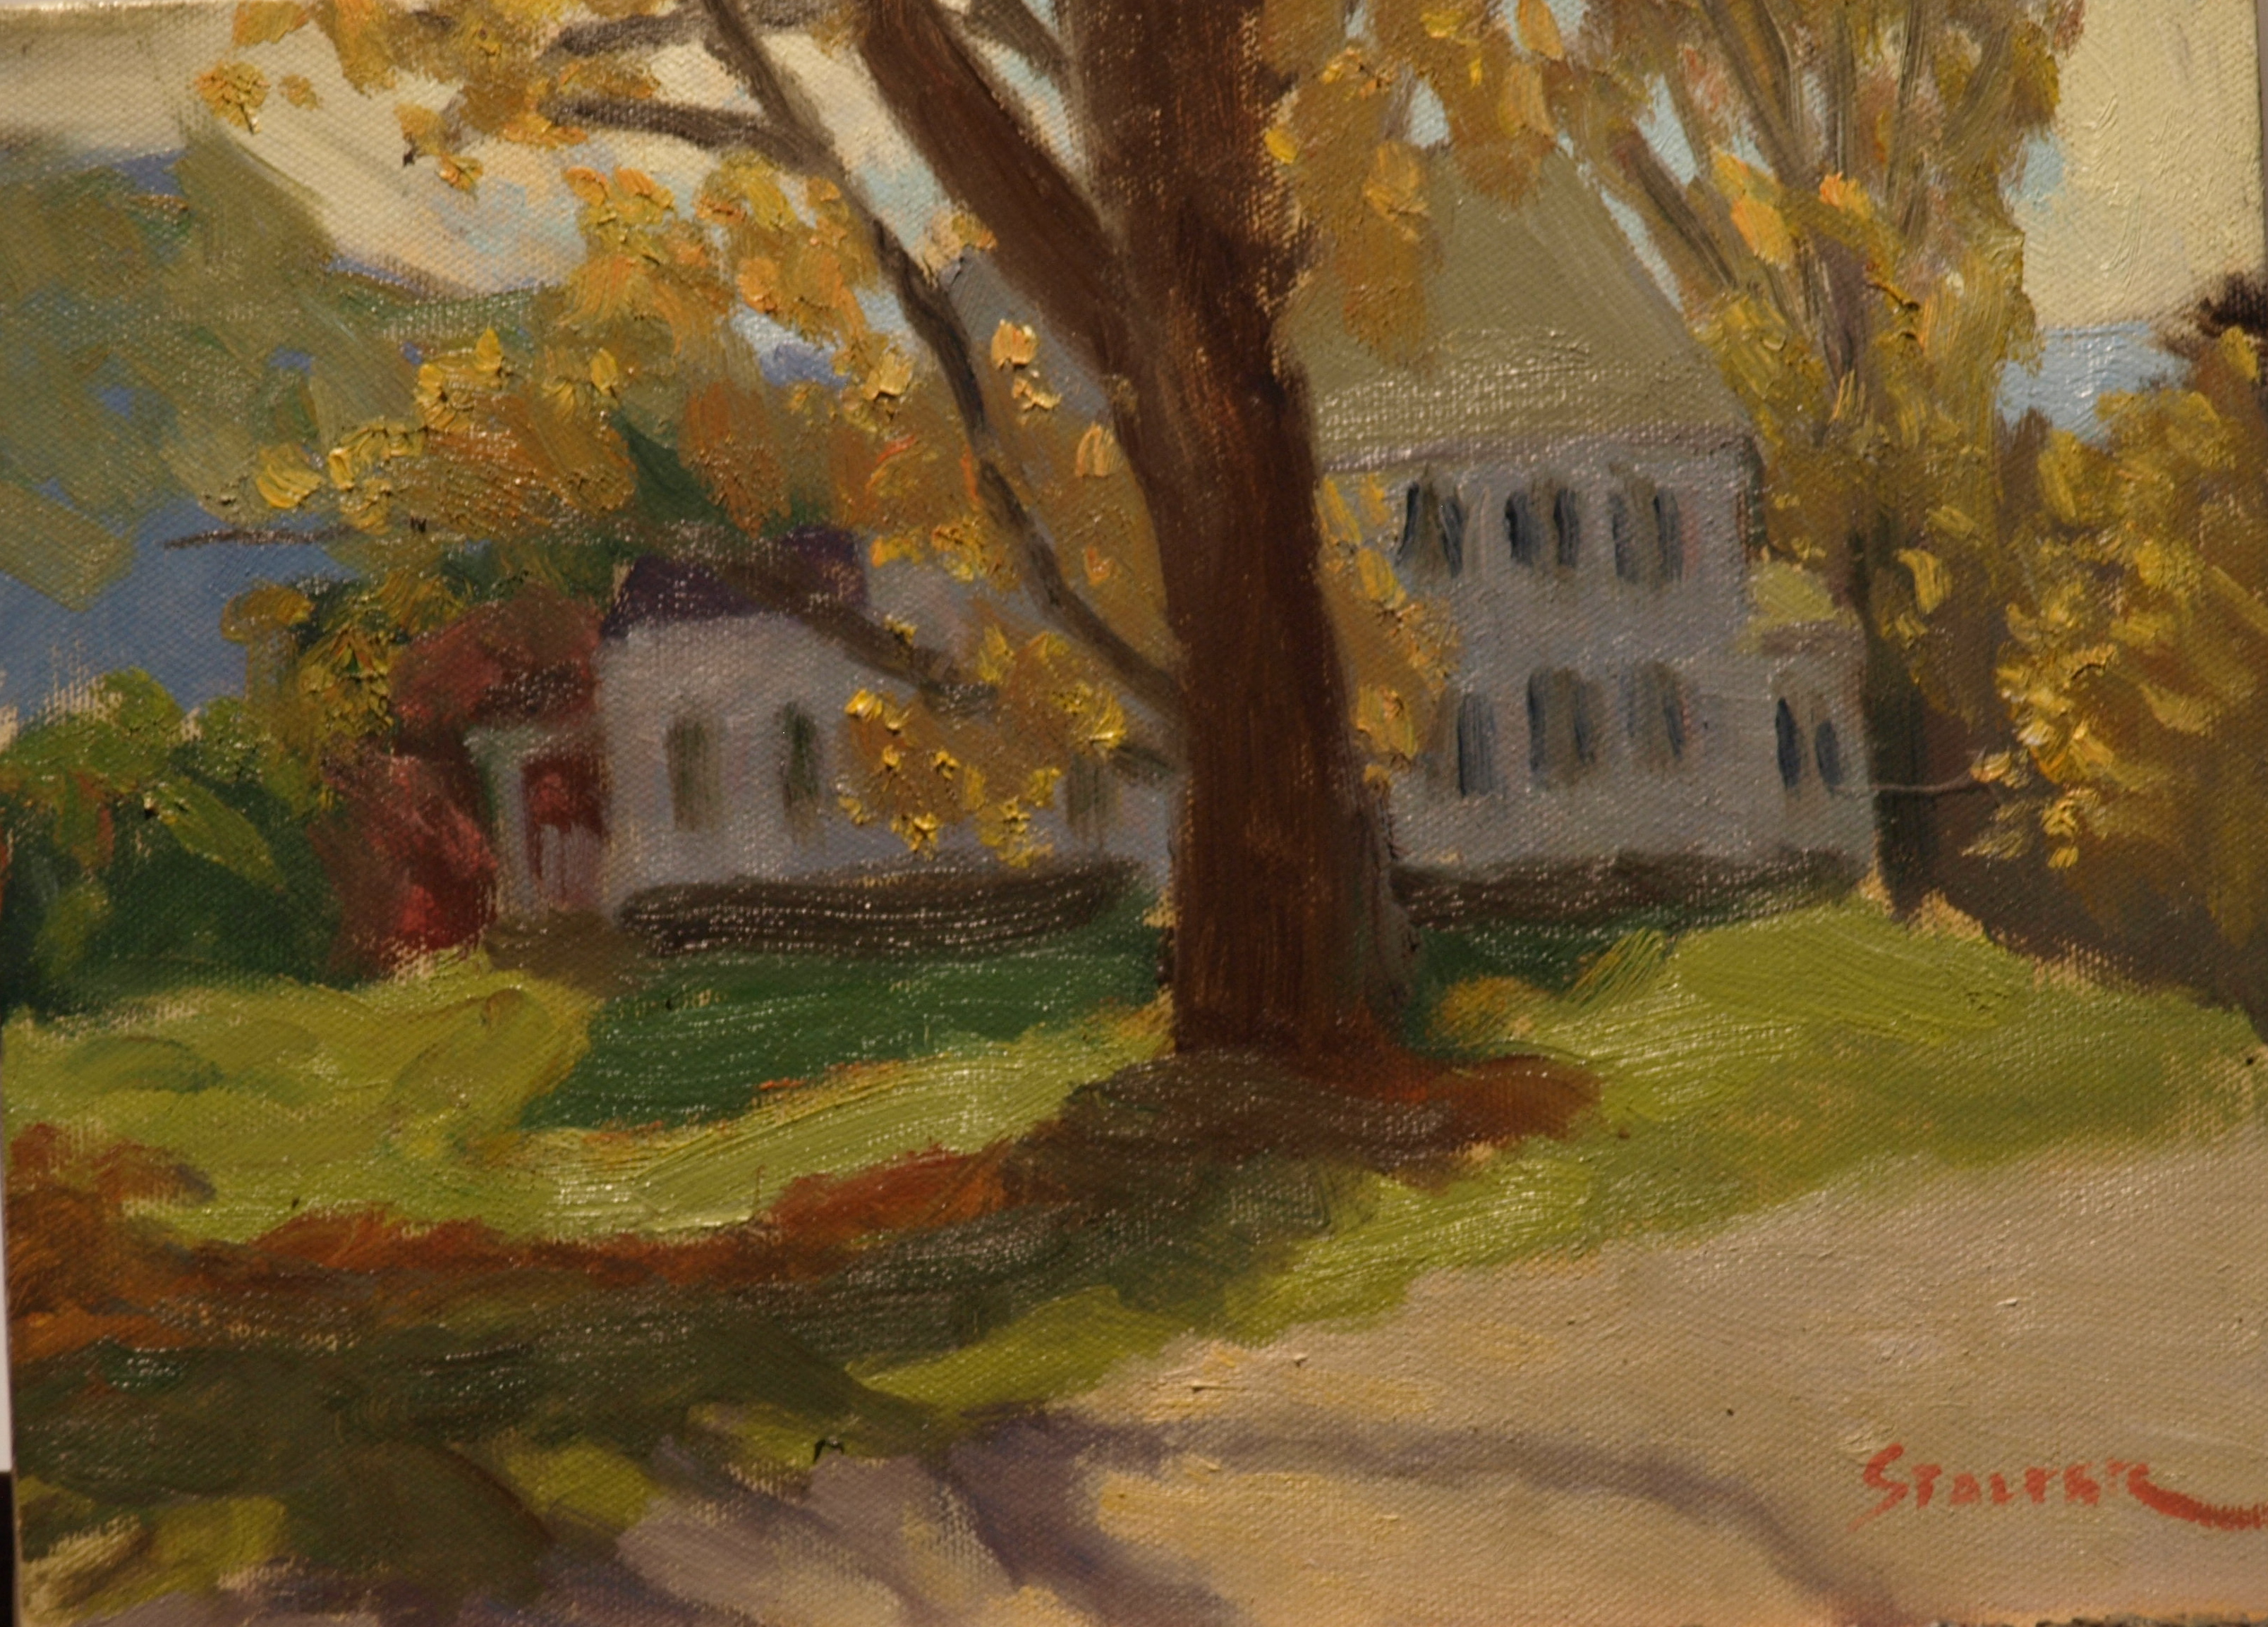 Shadows at Sunset, Oil on Canvas, 9 x 12 Inches, by Richard Stalter, $225